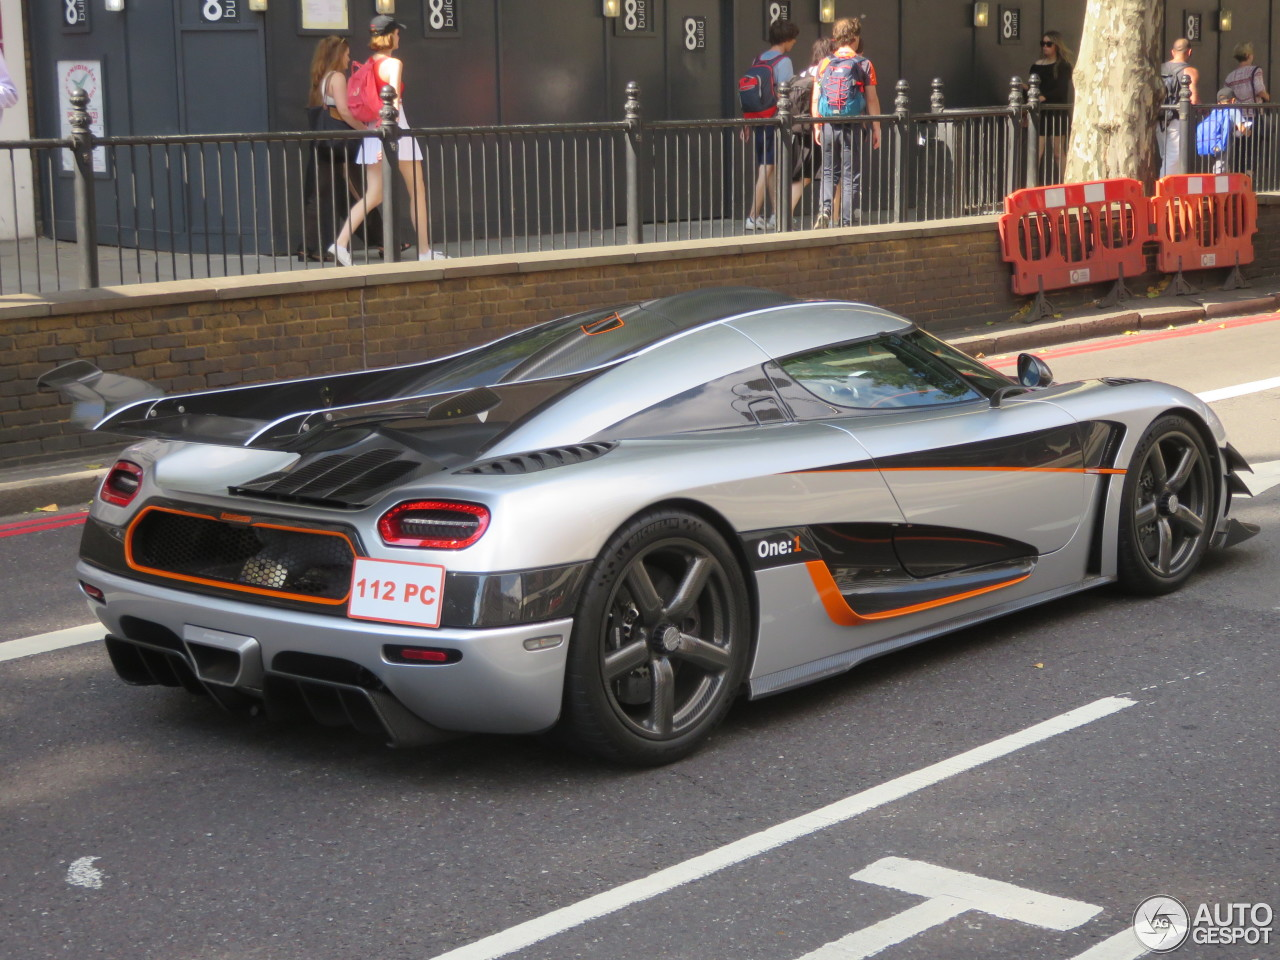 4 moreover Watch furthermore 21 in addition 03 additionally 12. on koenigsegg newest car